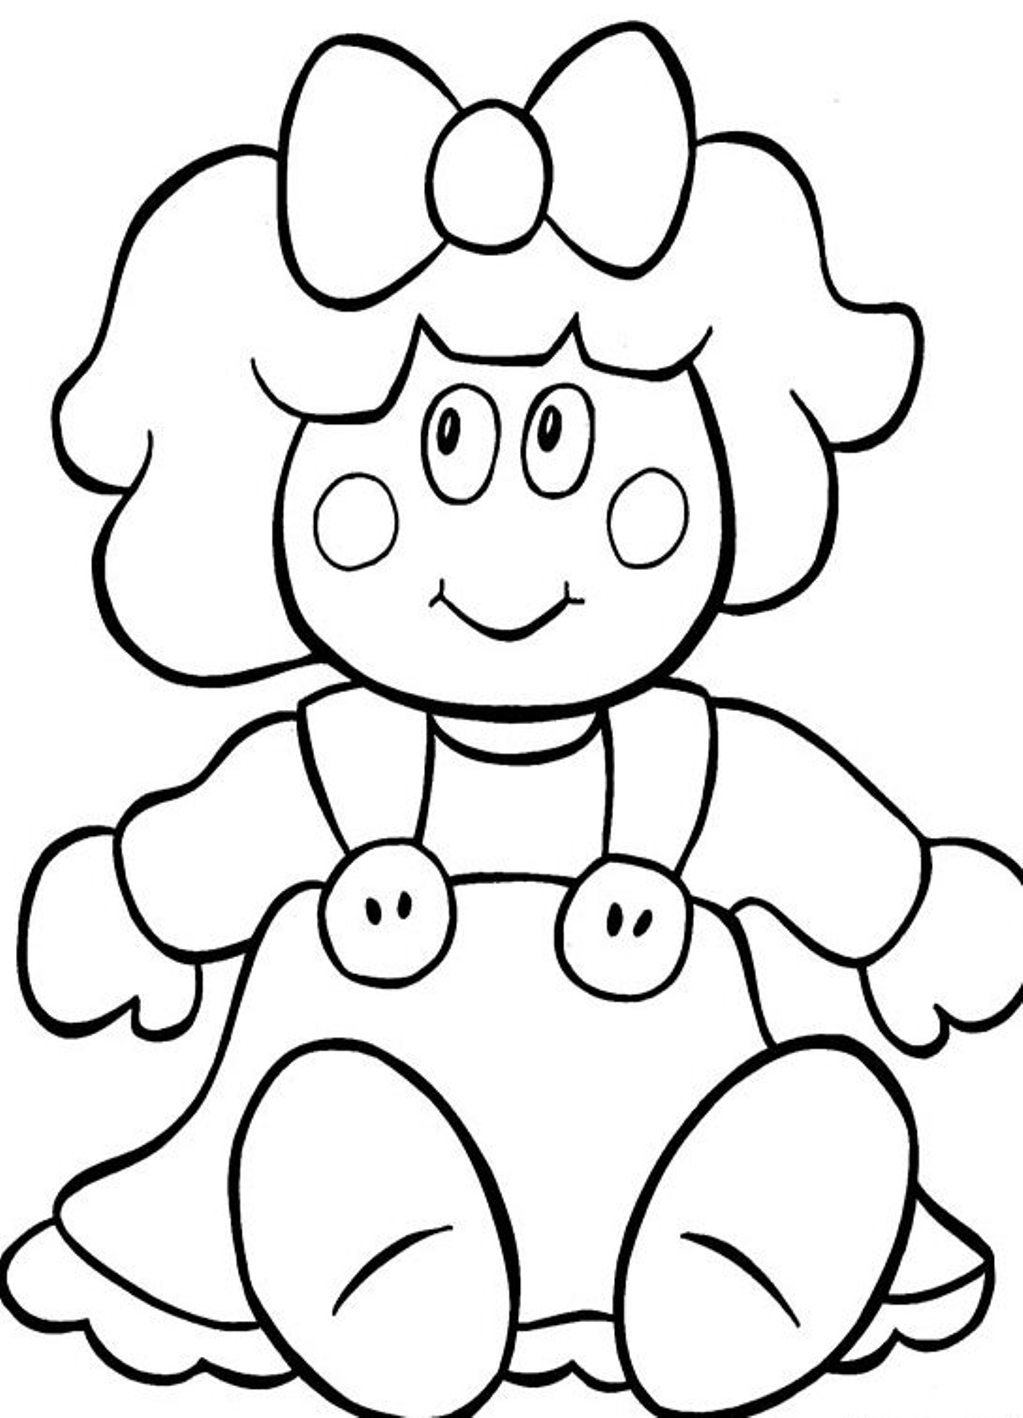 coloring dolls doll coloring pages to download and print for free dolls coloring